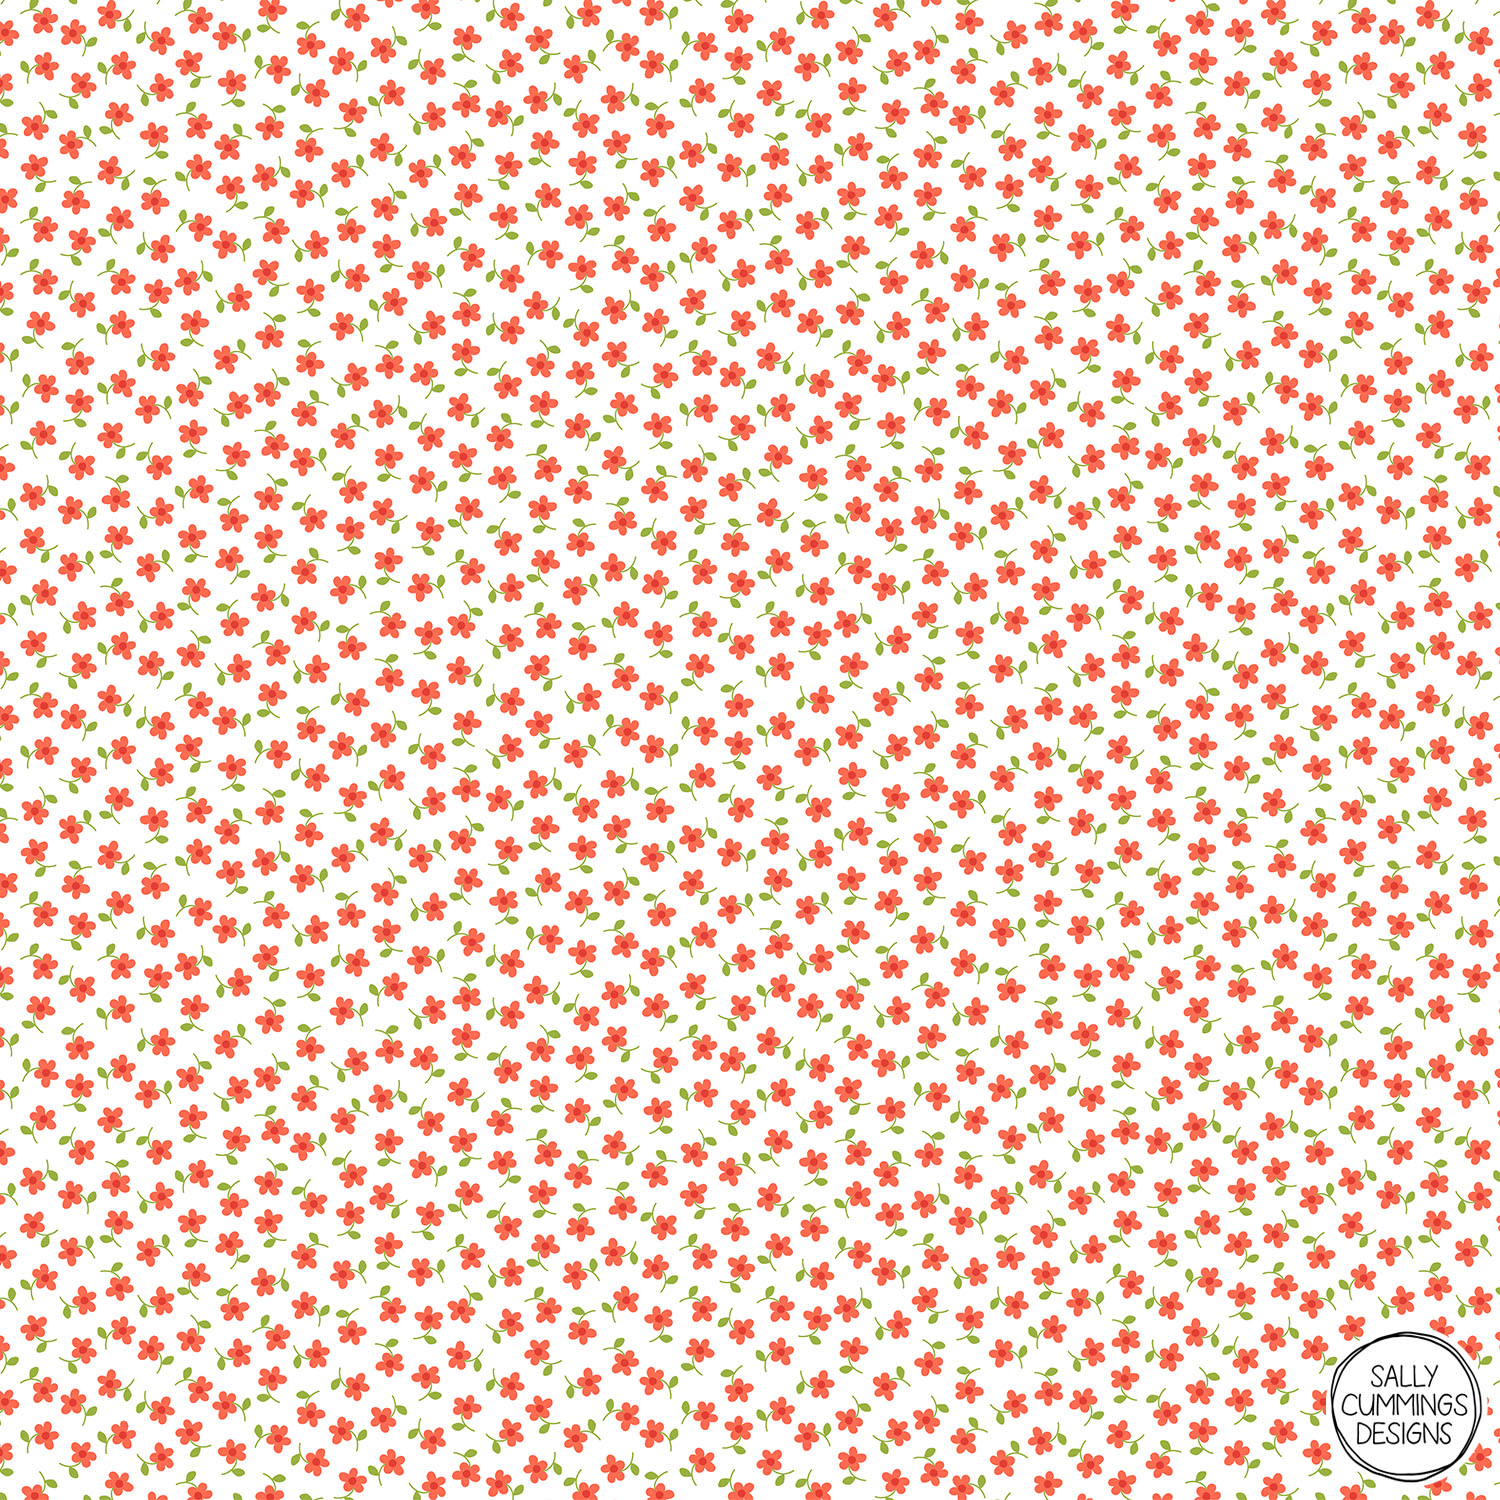 Sally Cummings Designs - Ditsy Floral Pattern (Coral and Green on White)